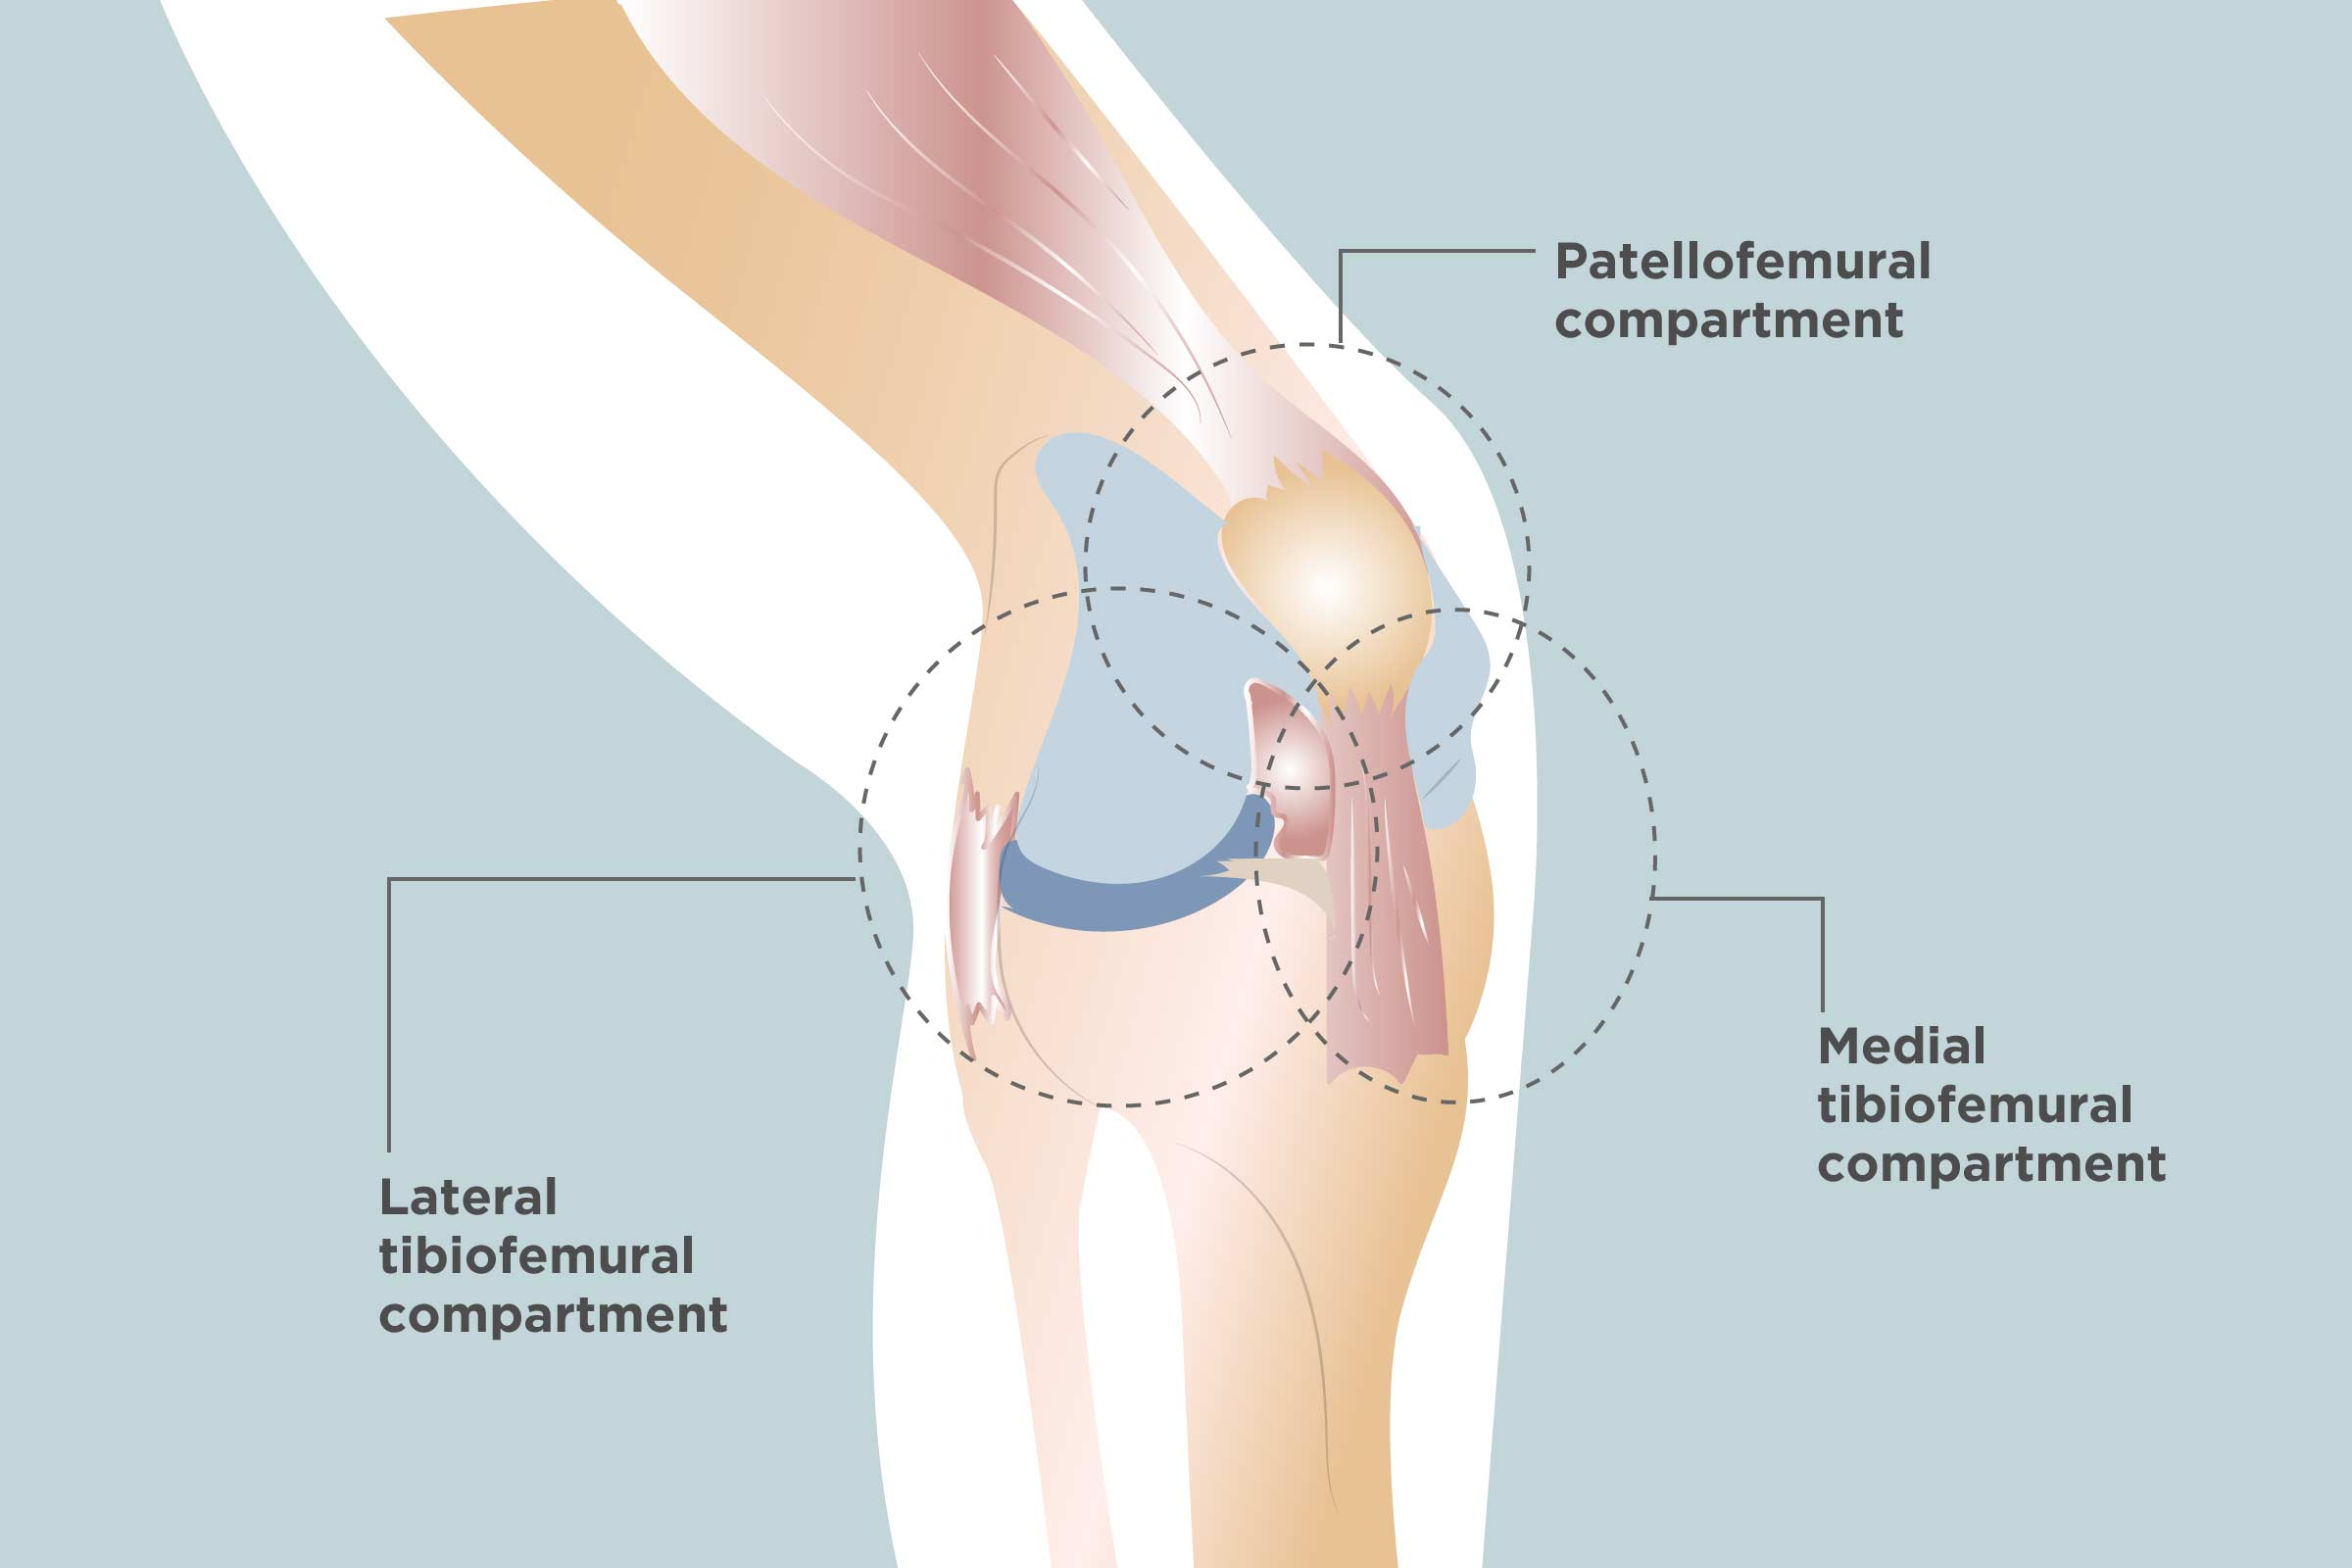 knee injuries, knee schematic, knee articular cartilage, medial collateral ligament, knee brace patellar tendon strap, knee cap popped out of place, knee bones, knee arthritis symptoms, medial meniscus, knee and leg tendons, sacroiliac joint, knee pain, posterior cruciate ligament, hinge joint, knee patella, knee drawing, knee exercises, anterior cruciate ligament injury, knee high heels, knee biology, knee osteoarthritis, knee flexion and extension, synovial joint, knee bursa, knee model, knee movements, knee arthroscopy, knee structure, knee outline, anterior cruciate ligament, on knee diagram